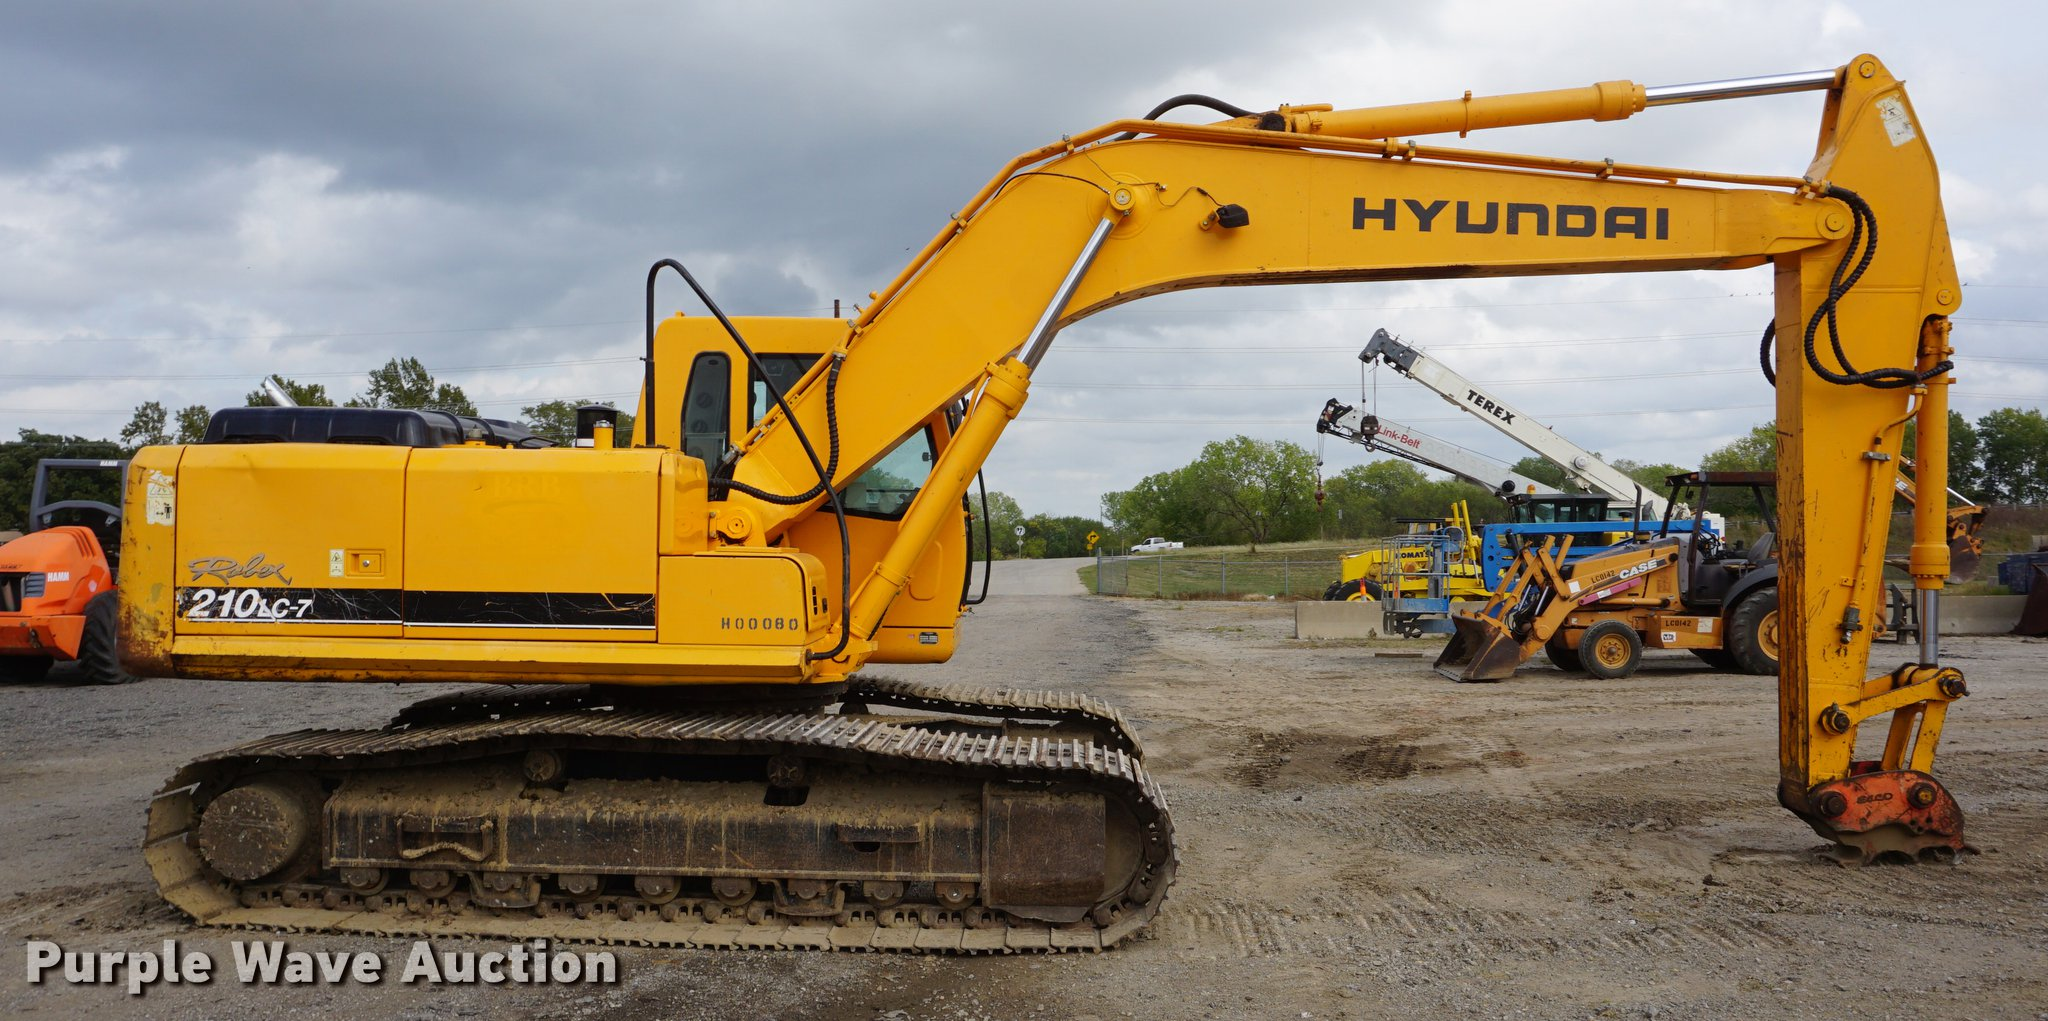 ... Hyundai Robex 210LC-7 excavator Full size in new window ...